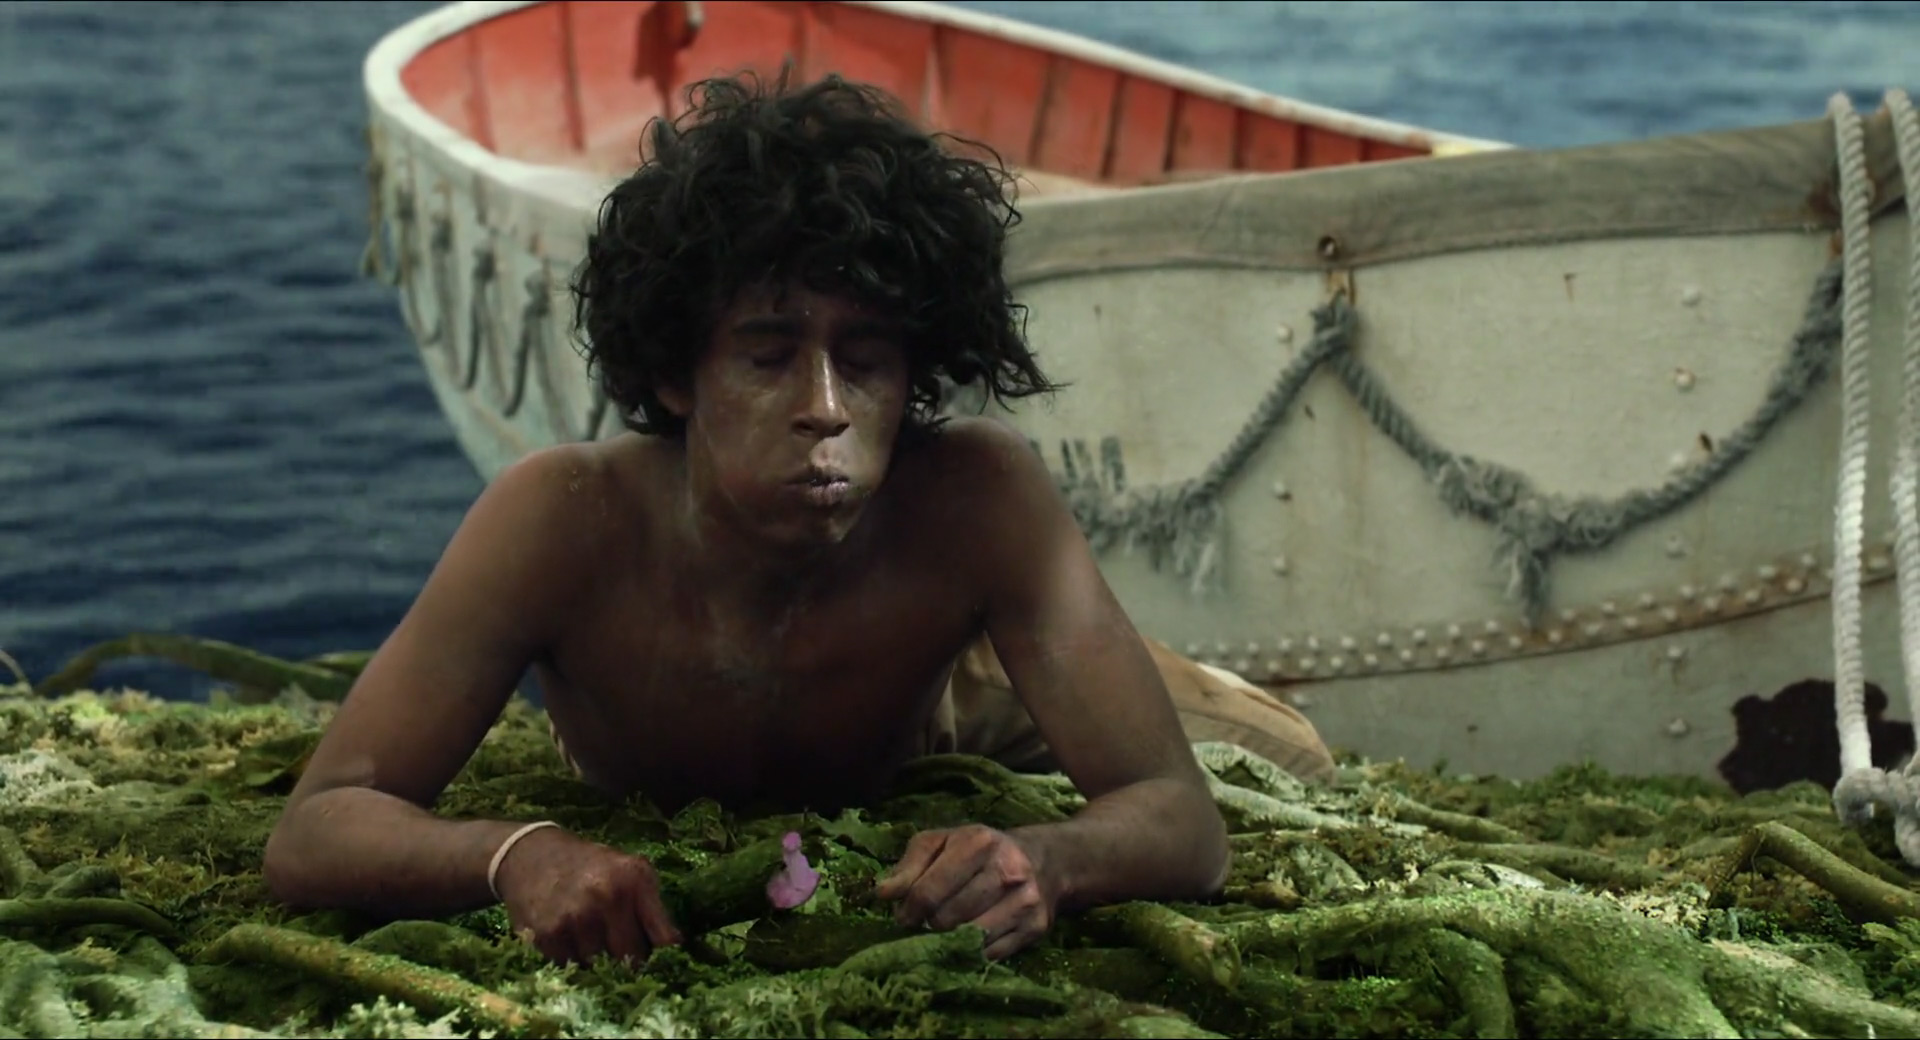 life of pi shutter island Movies: shutter island director: martin scorsese cast: leonardo dicaprio, mark ruffalo, ben kingsley, michelle williams, emily mortimer, patricia clarkson, jackie earle haley, ted levine, john carroll lynch production co: paramount pictures, phoenix pictures, sikelia productions genres.